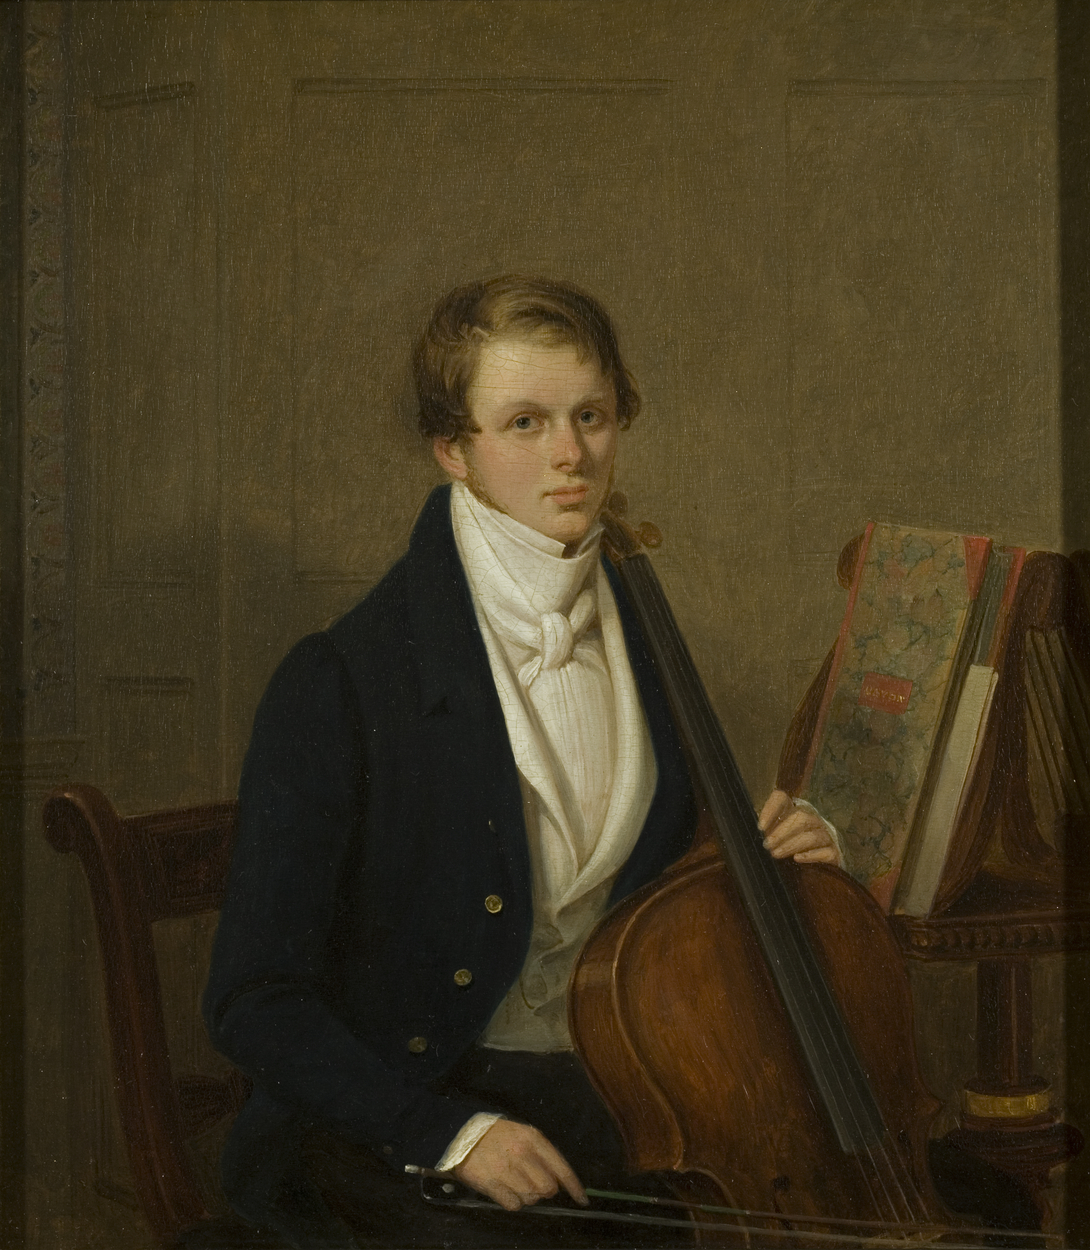 Painting of man with cello